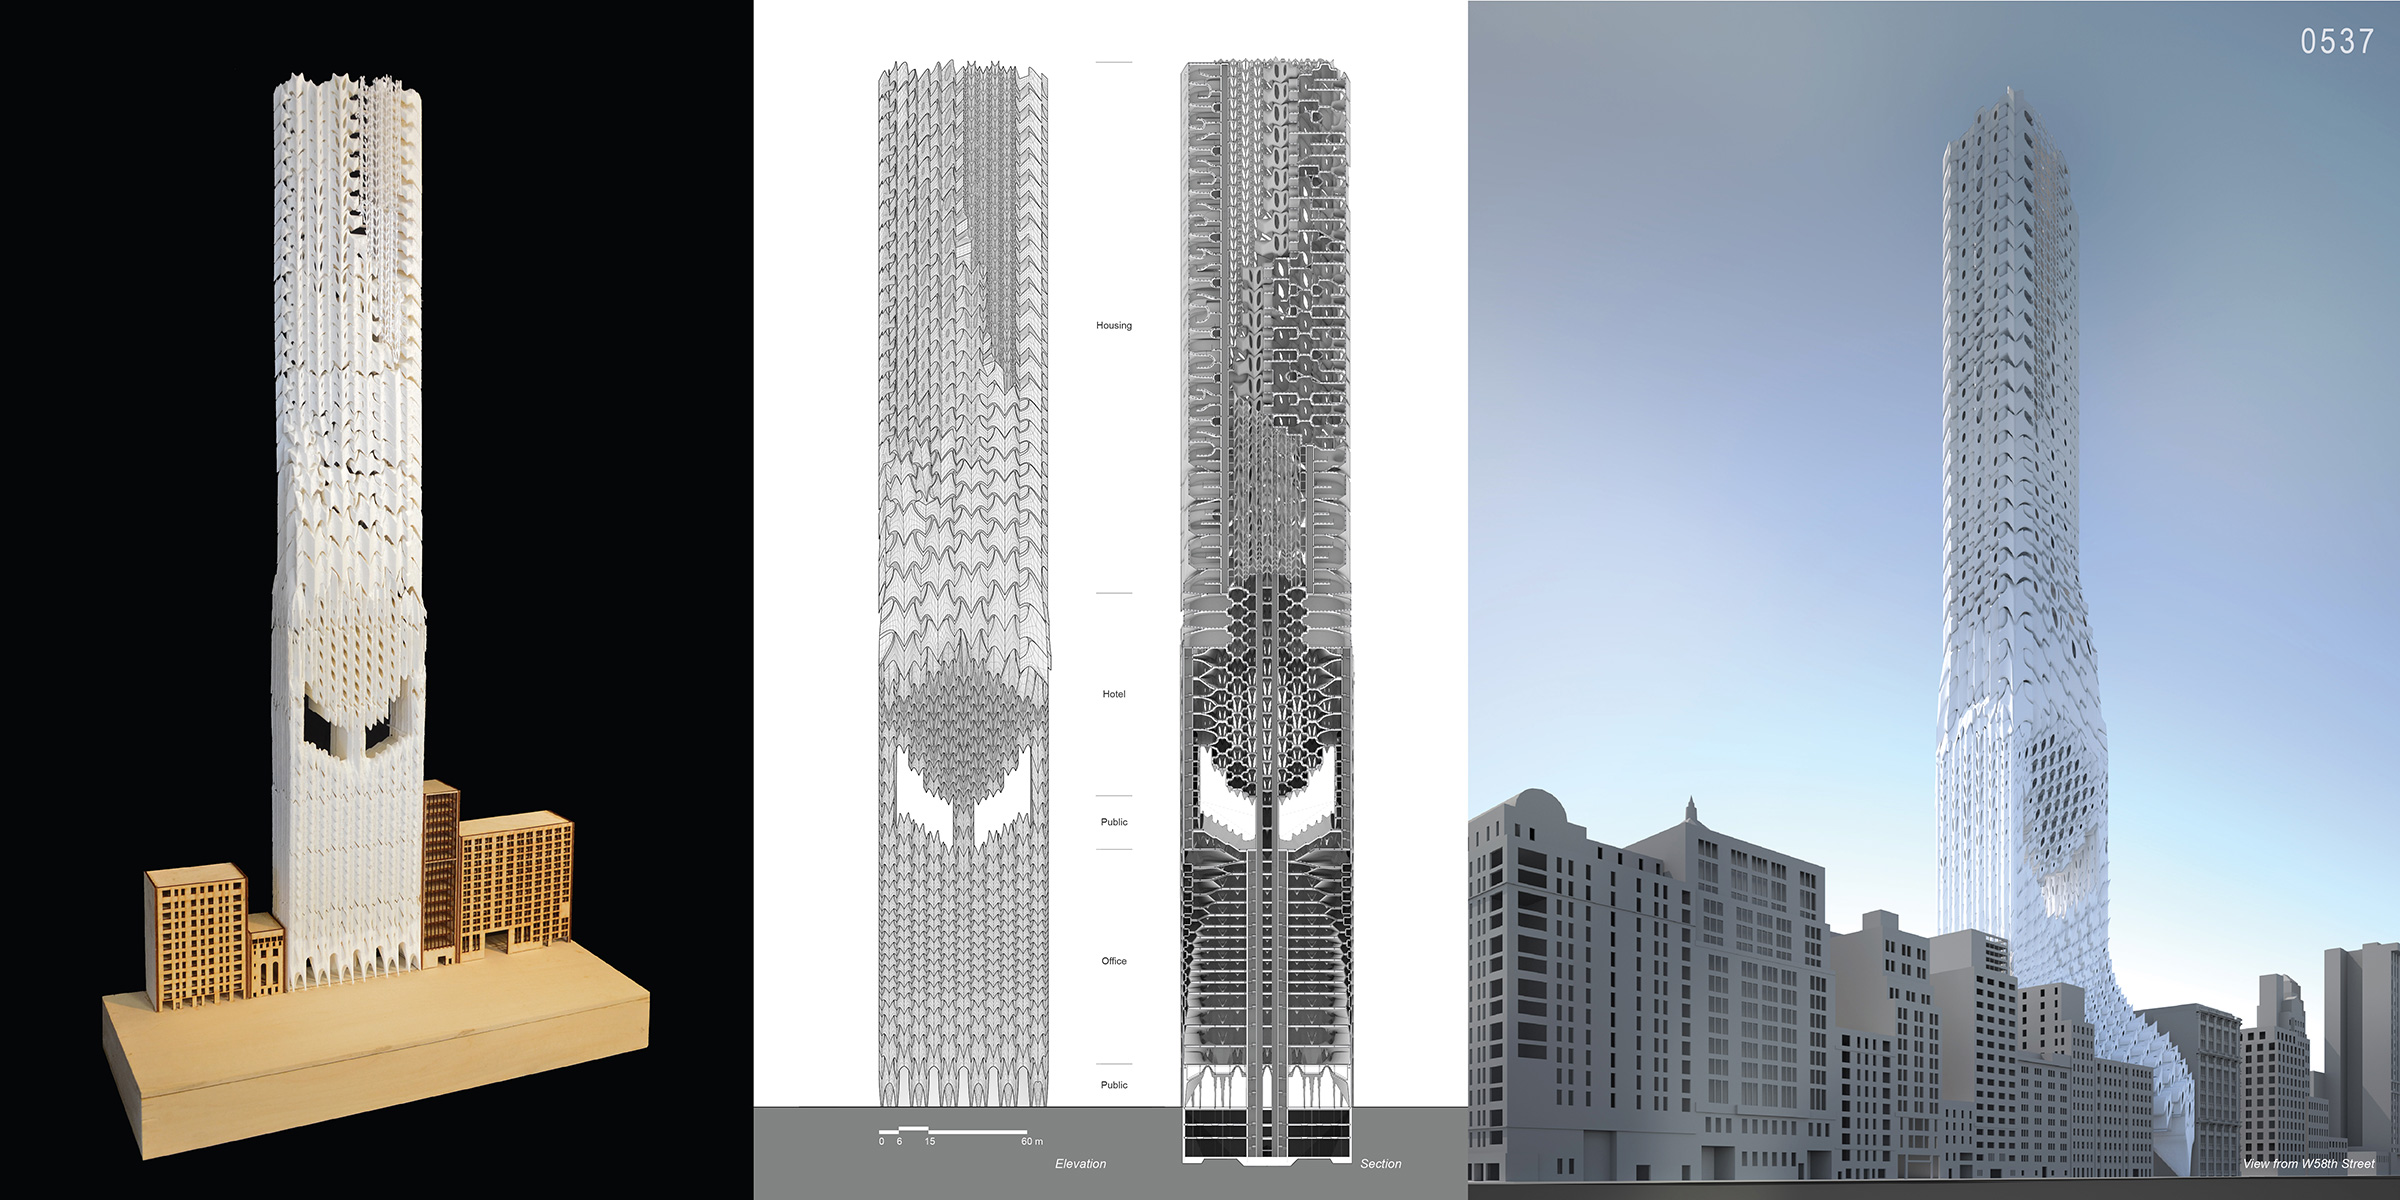 Deep skins new skyscraper typology in nyc as an adaptive for Architecture 2017